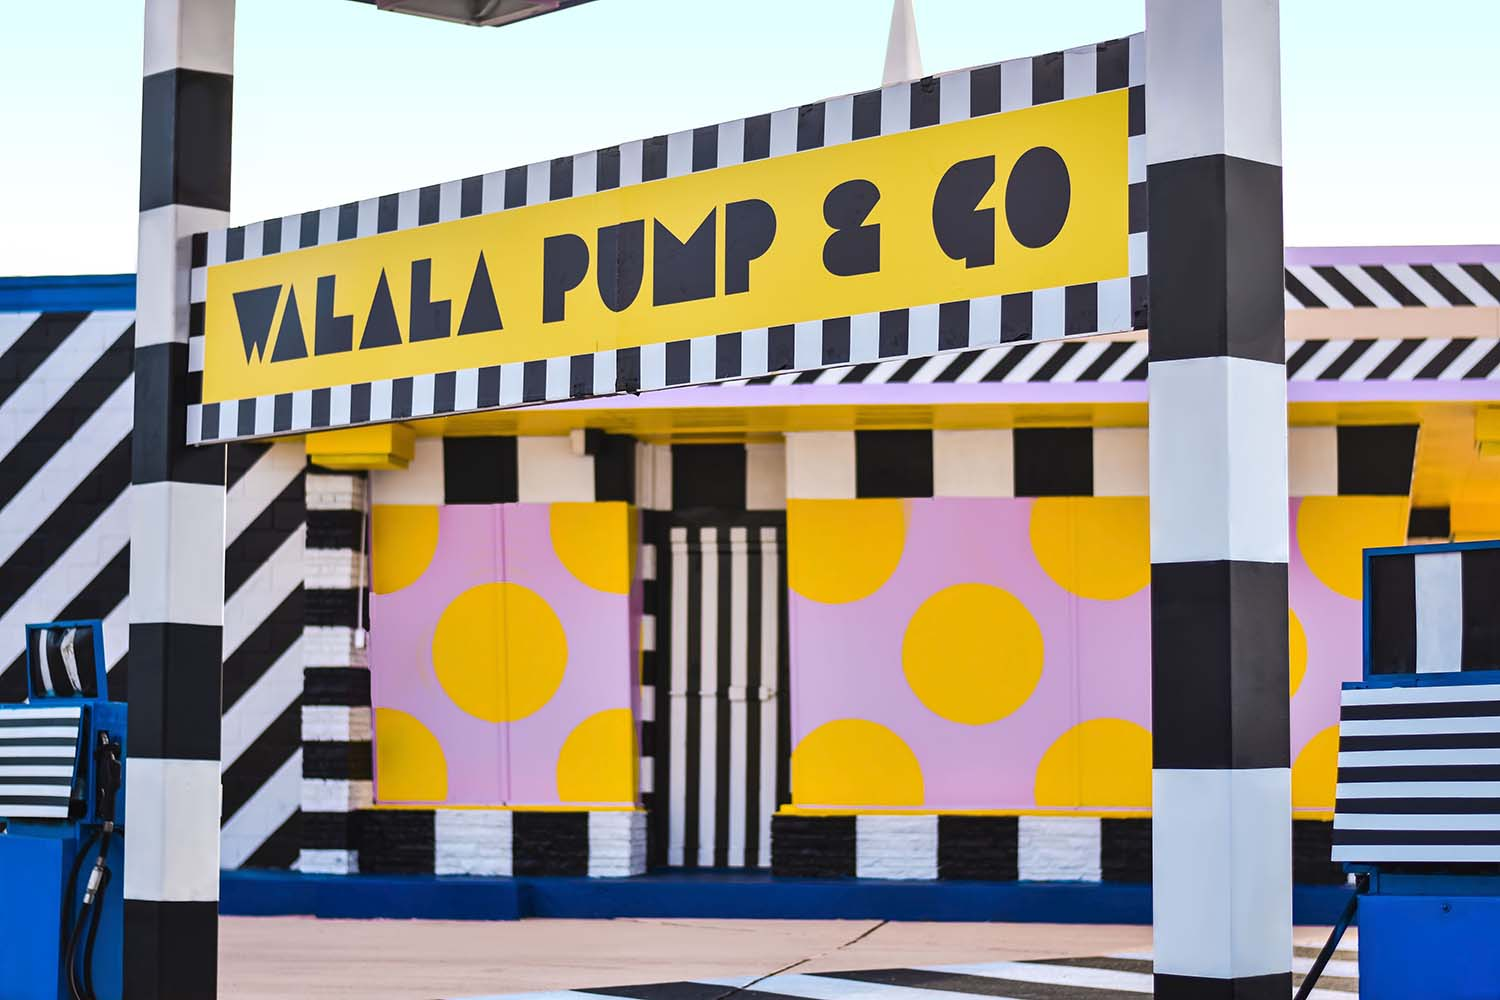 Walala Pump & Go, Downtown Fort Smith Arkansas Unexpected Street Art Festival by Justkids